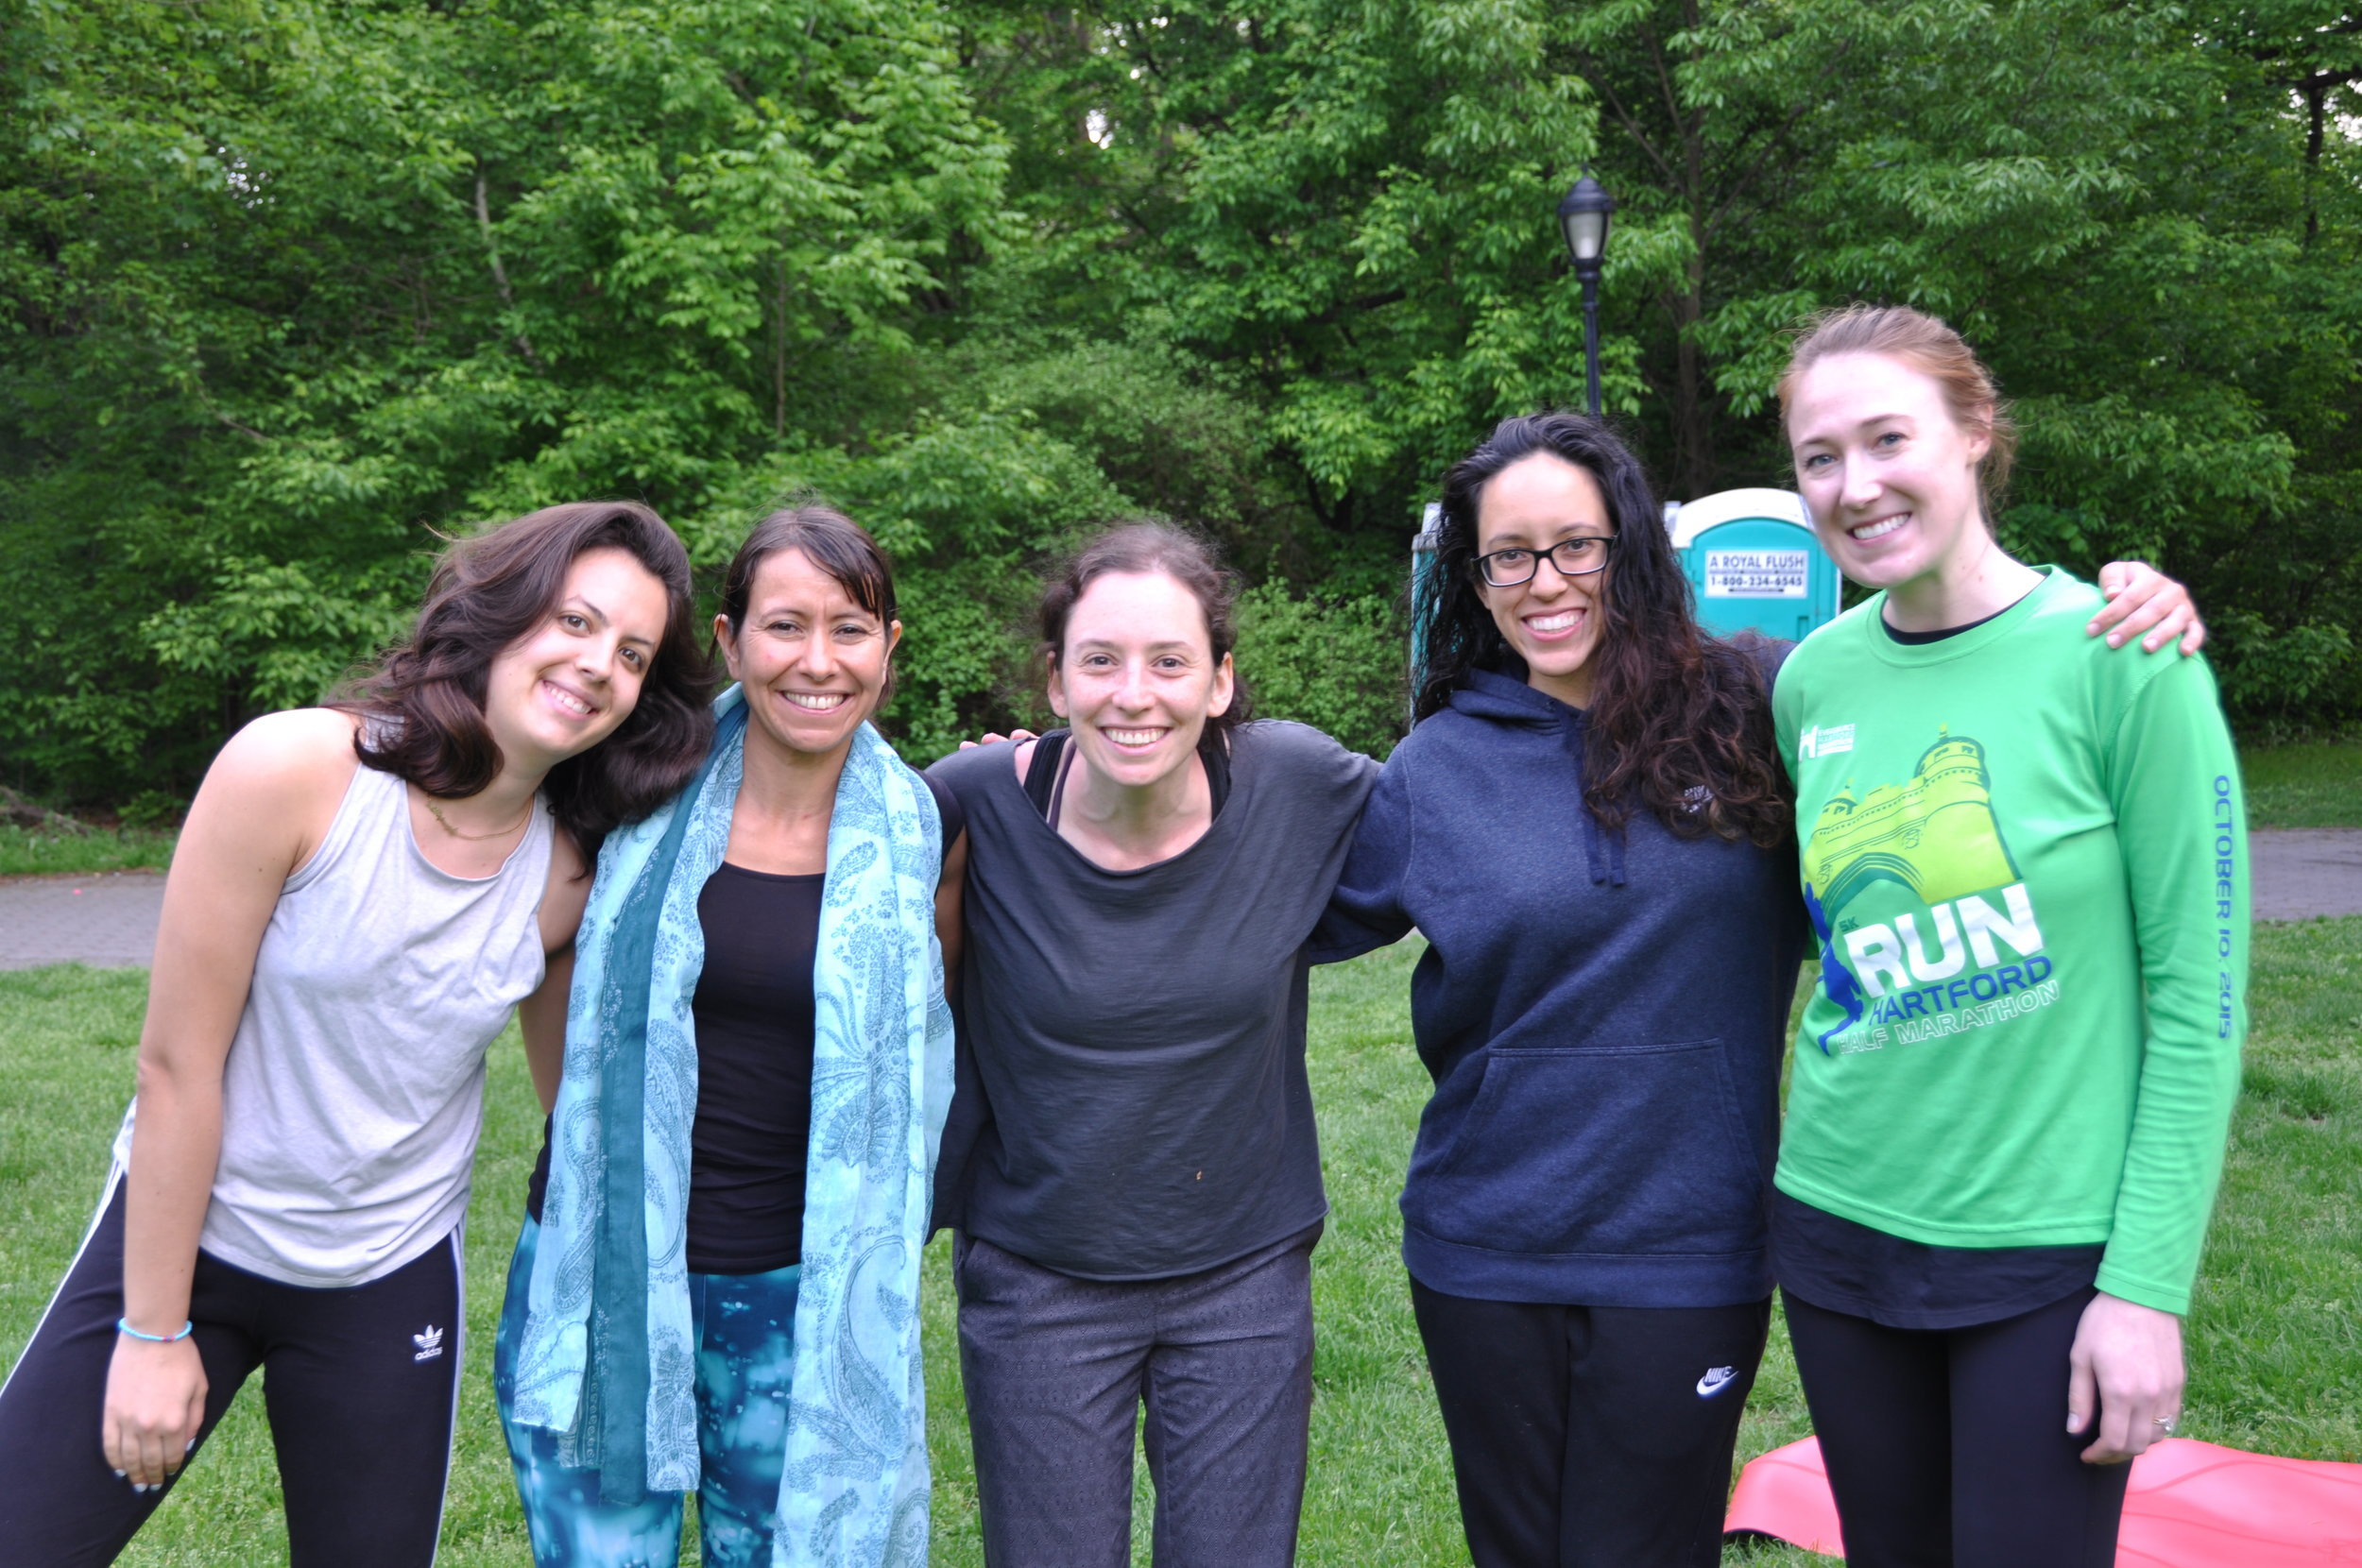 Small group coaching session with Dominique Mas in Prospect Park